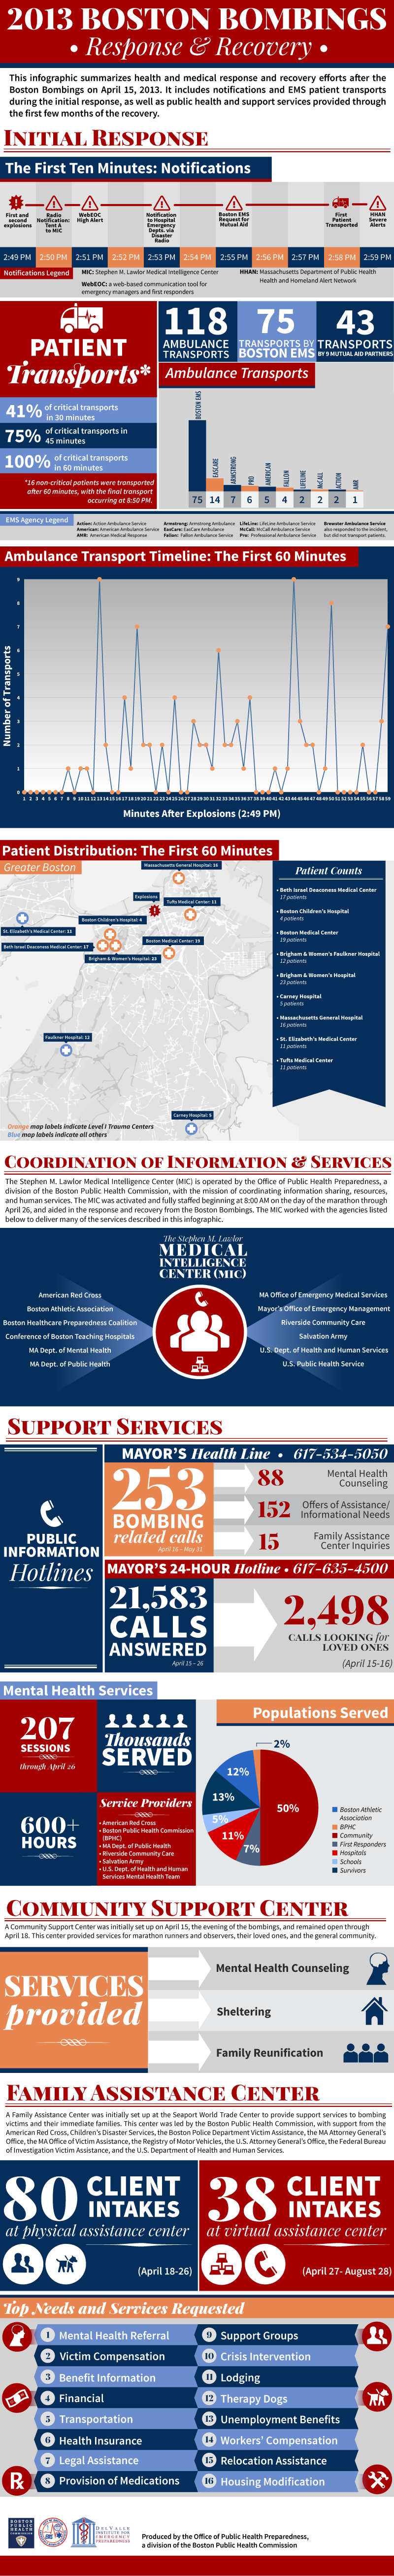 2013 Boston Bombing Infographic